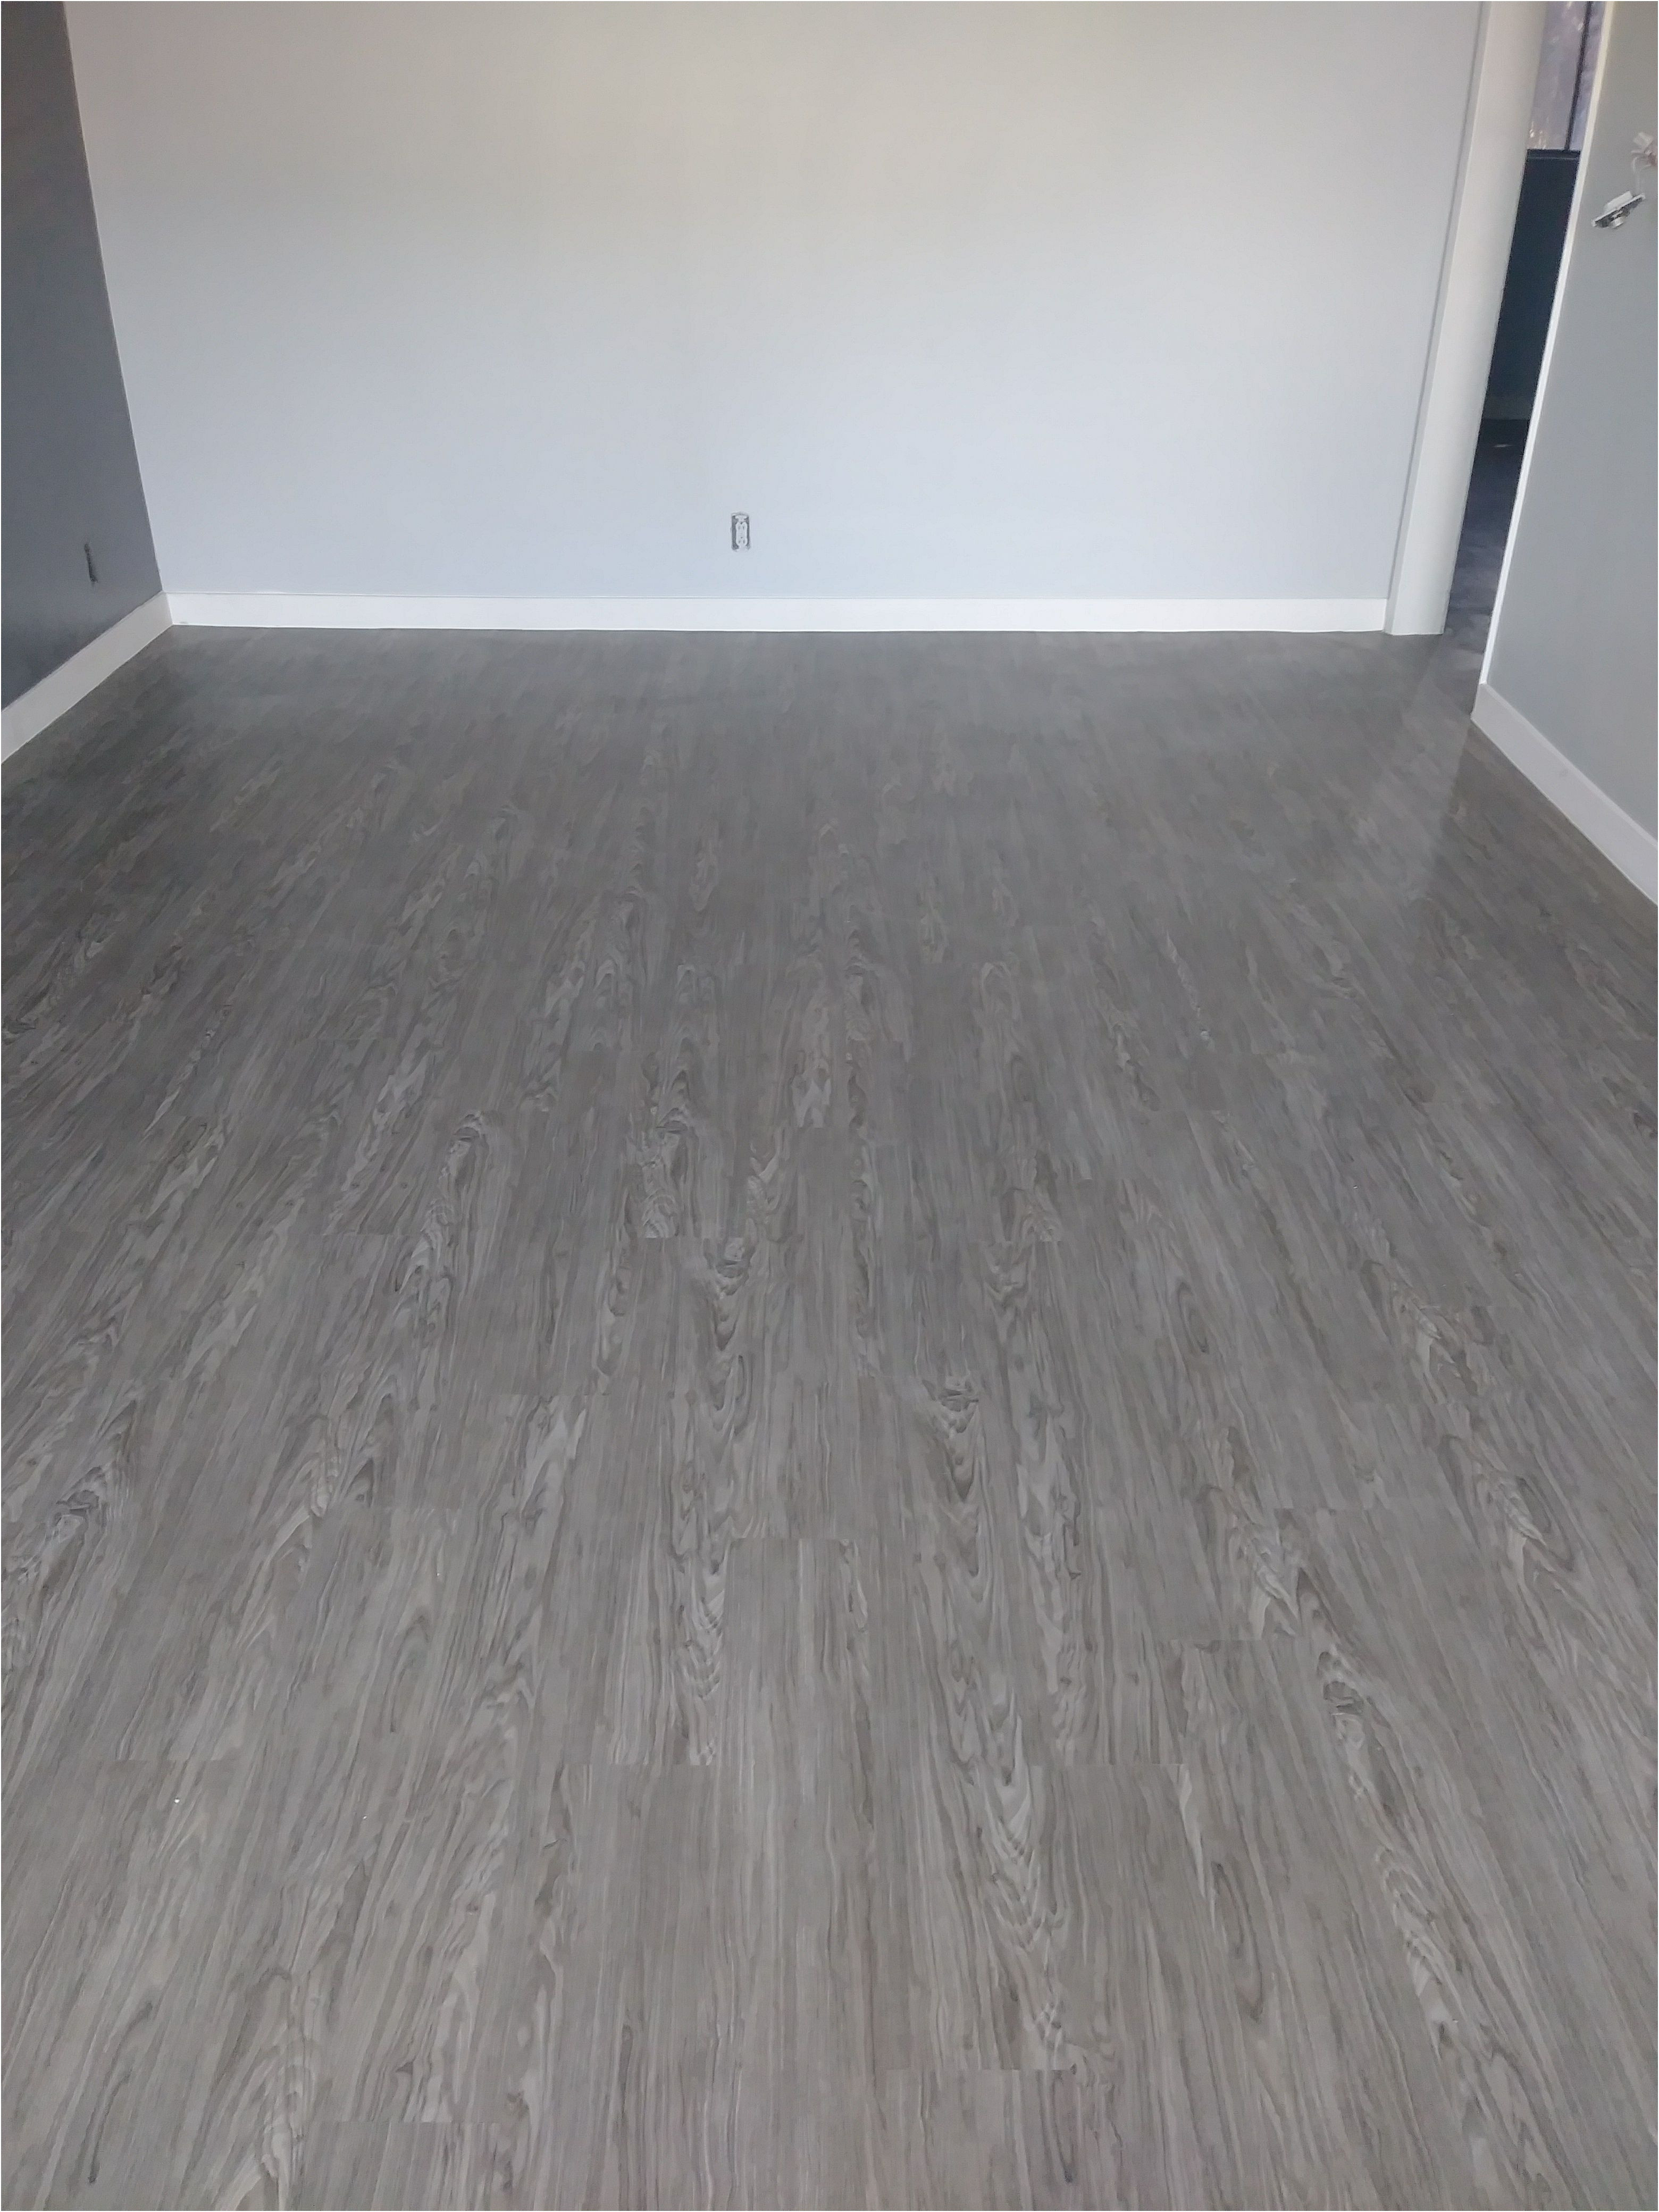 bay hardwood flooring of flooring nj furniture design hard wood flooring new 0d grace place pertaining to flooring nj free in home flooring estimate collection 0d castlebay drive